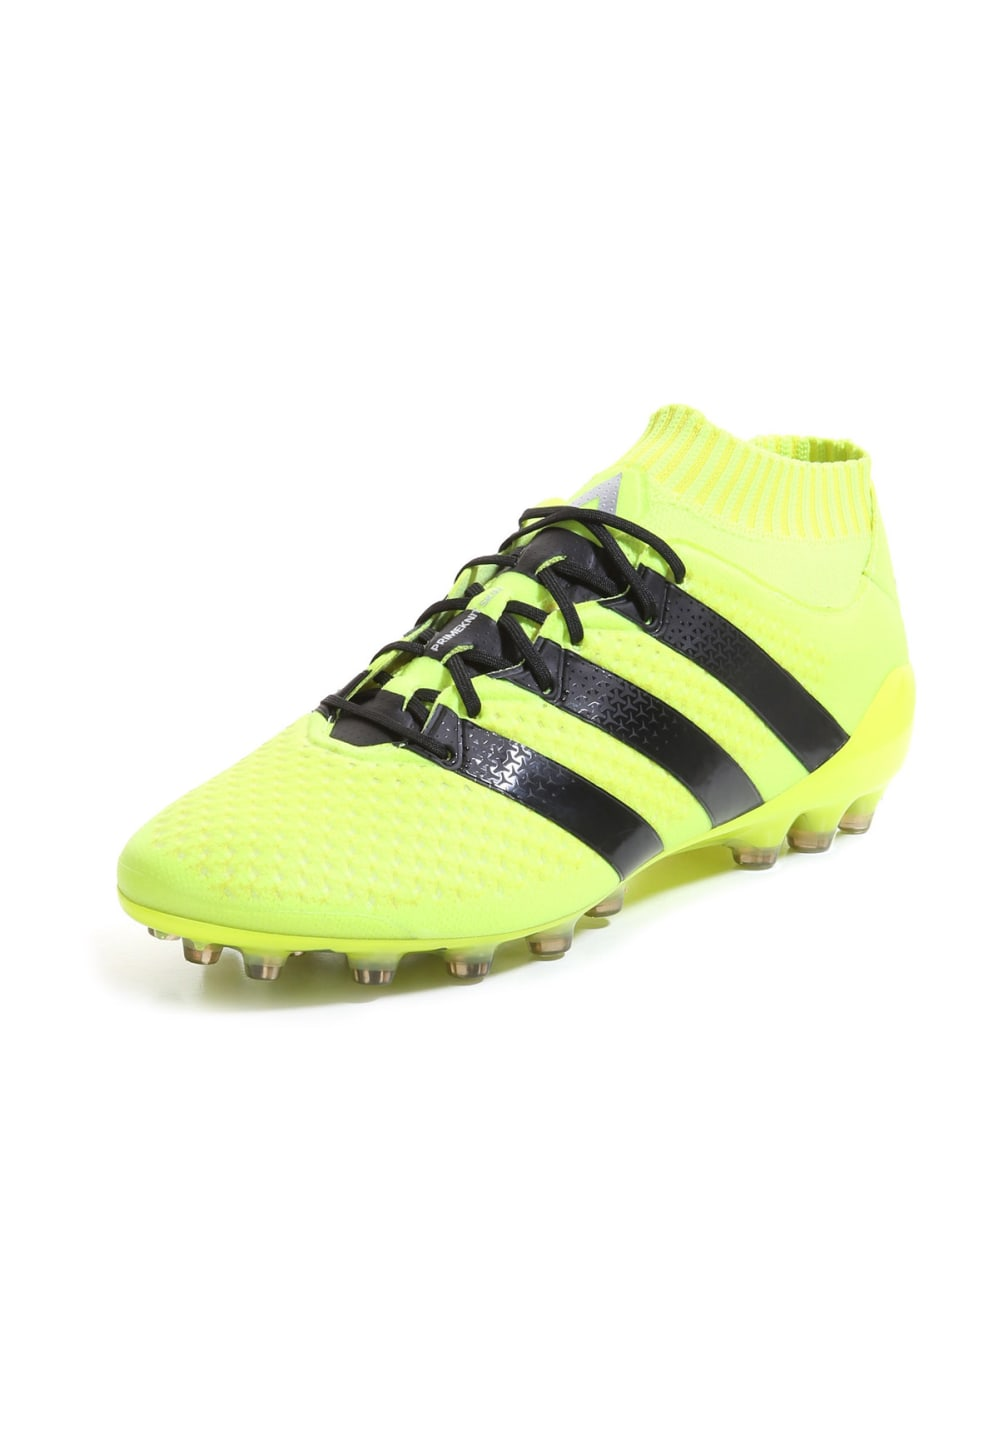 finest selection f3b69 f427d adidas ACE 16.1 Primeknit AG - Football Shoes for Men - Yellow